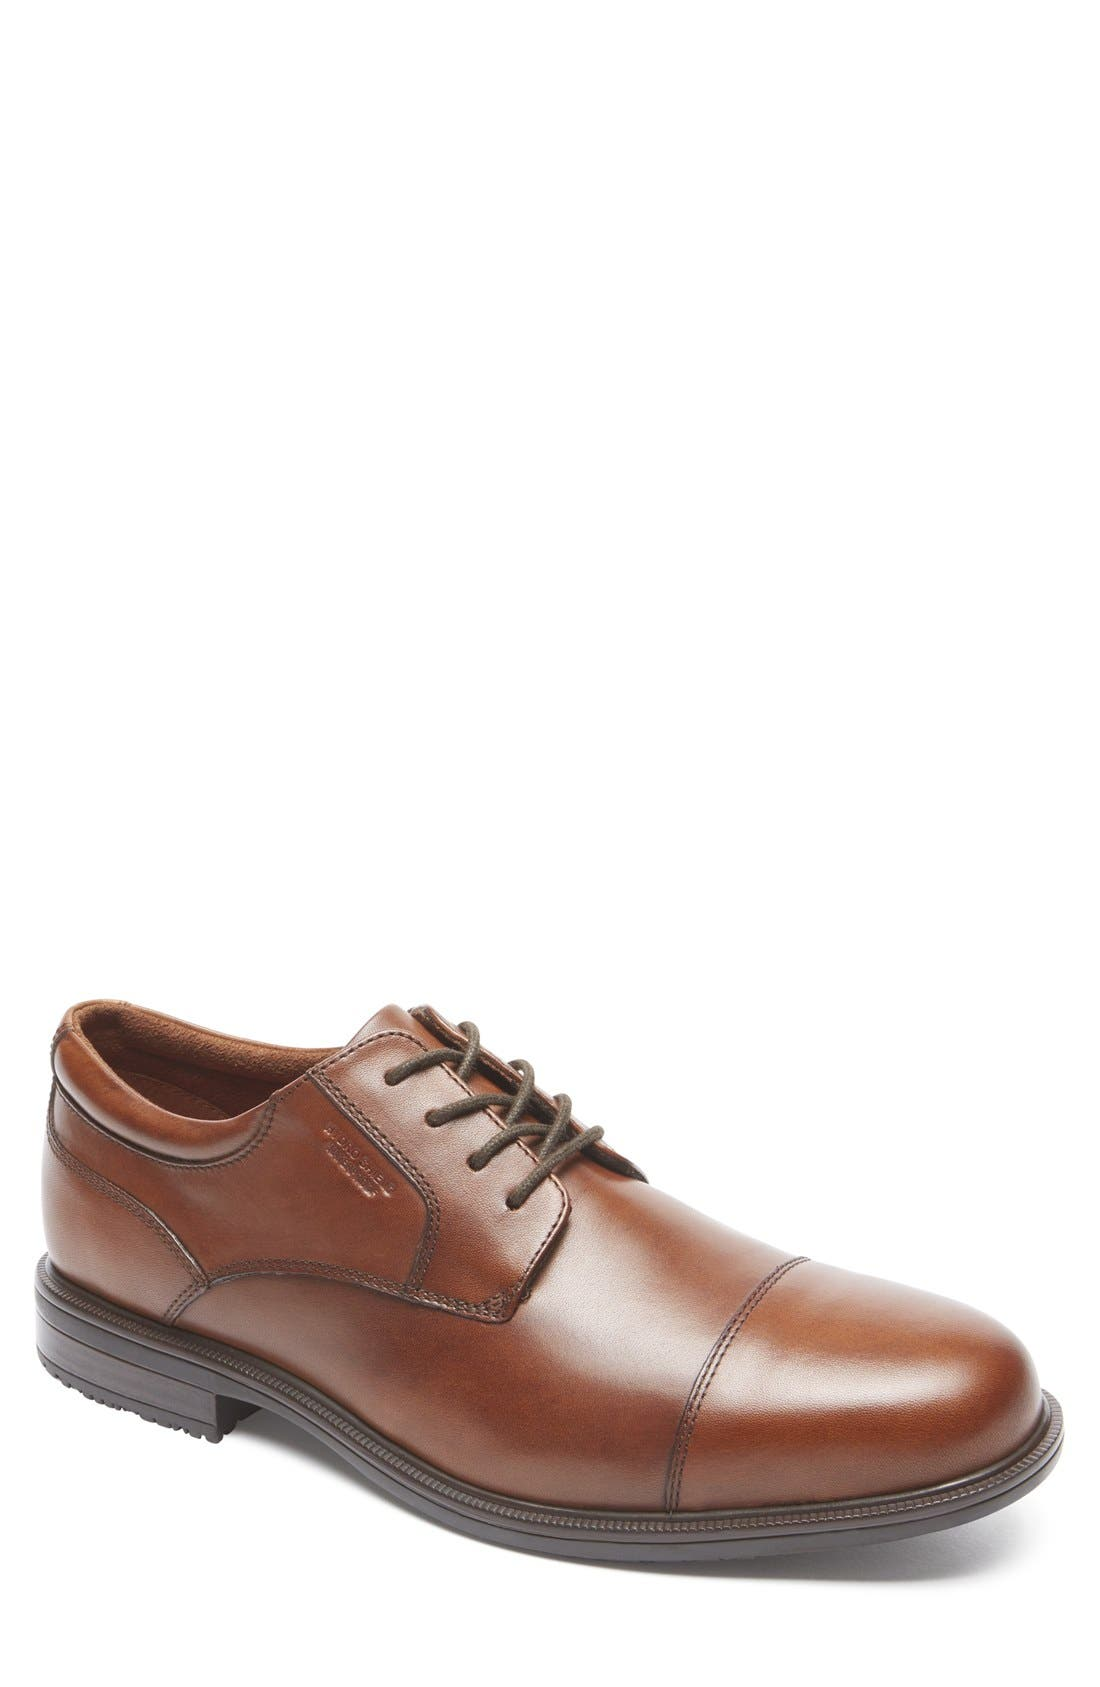 'Essential Details II' Cap Toe Derby,                             Main thumbnail 1, color,                             200